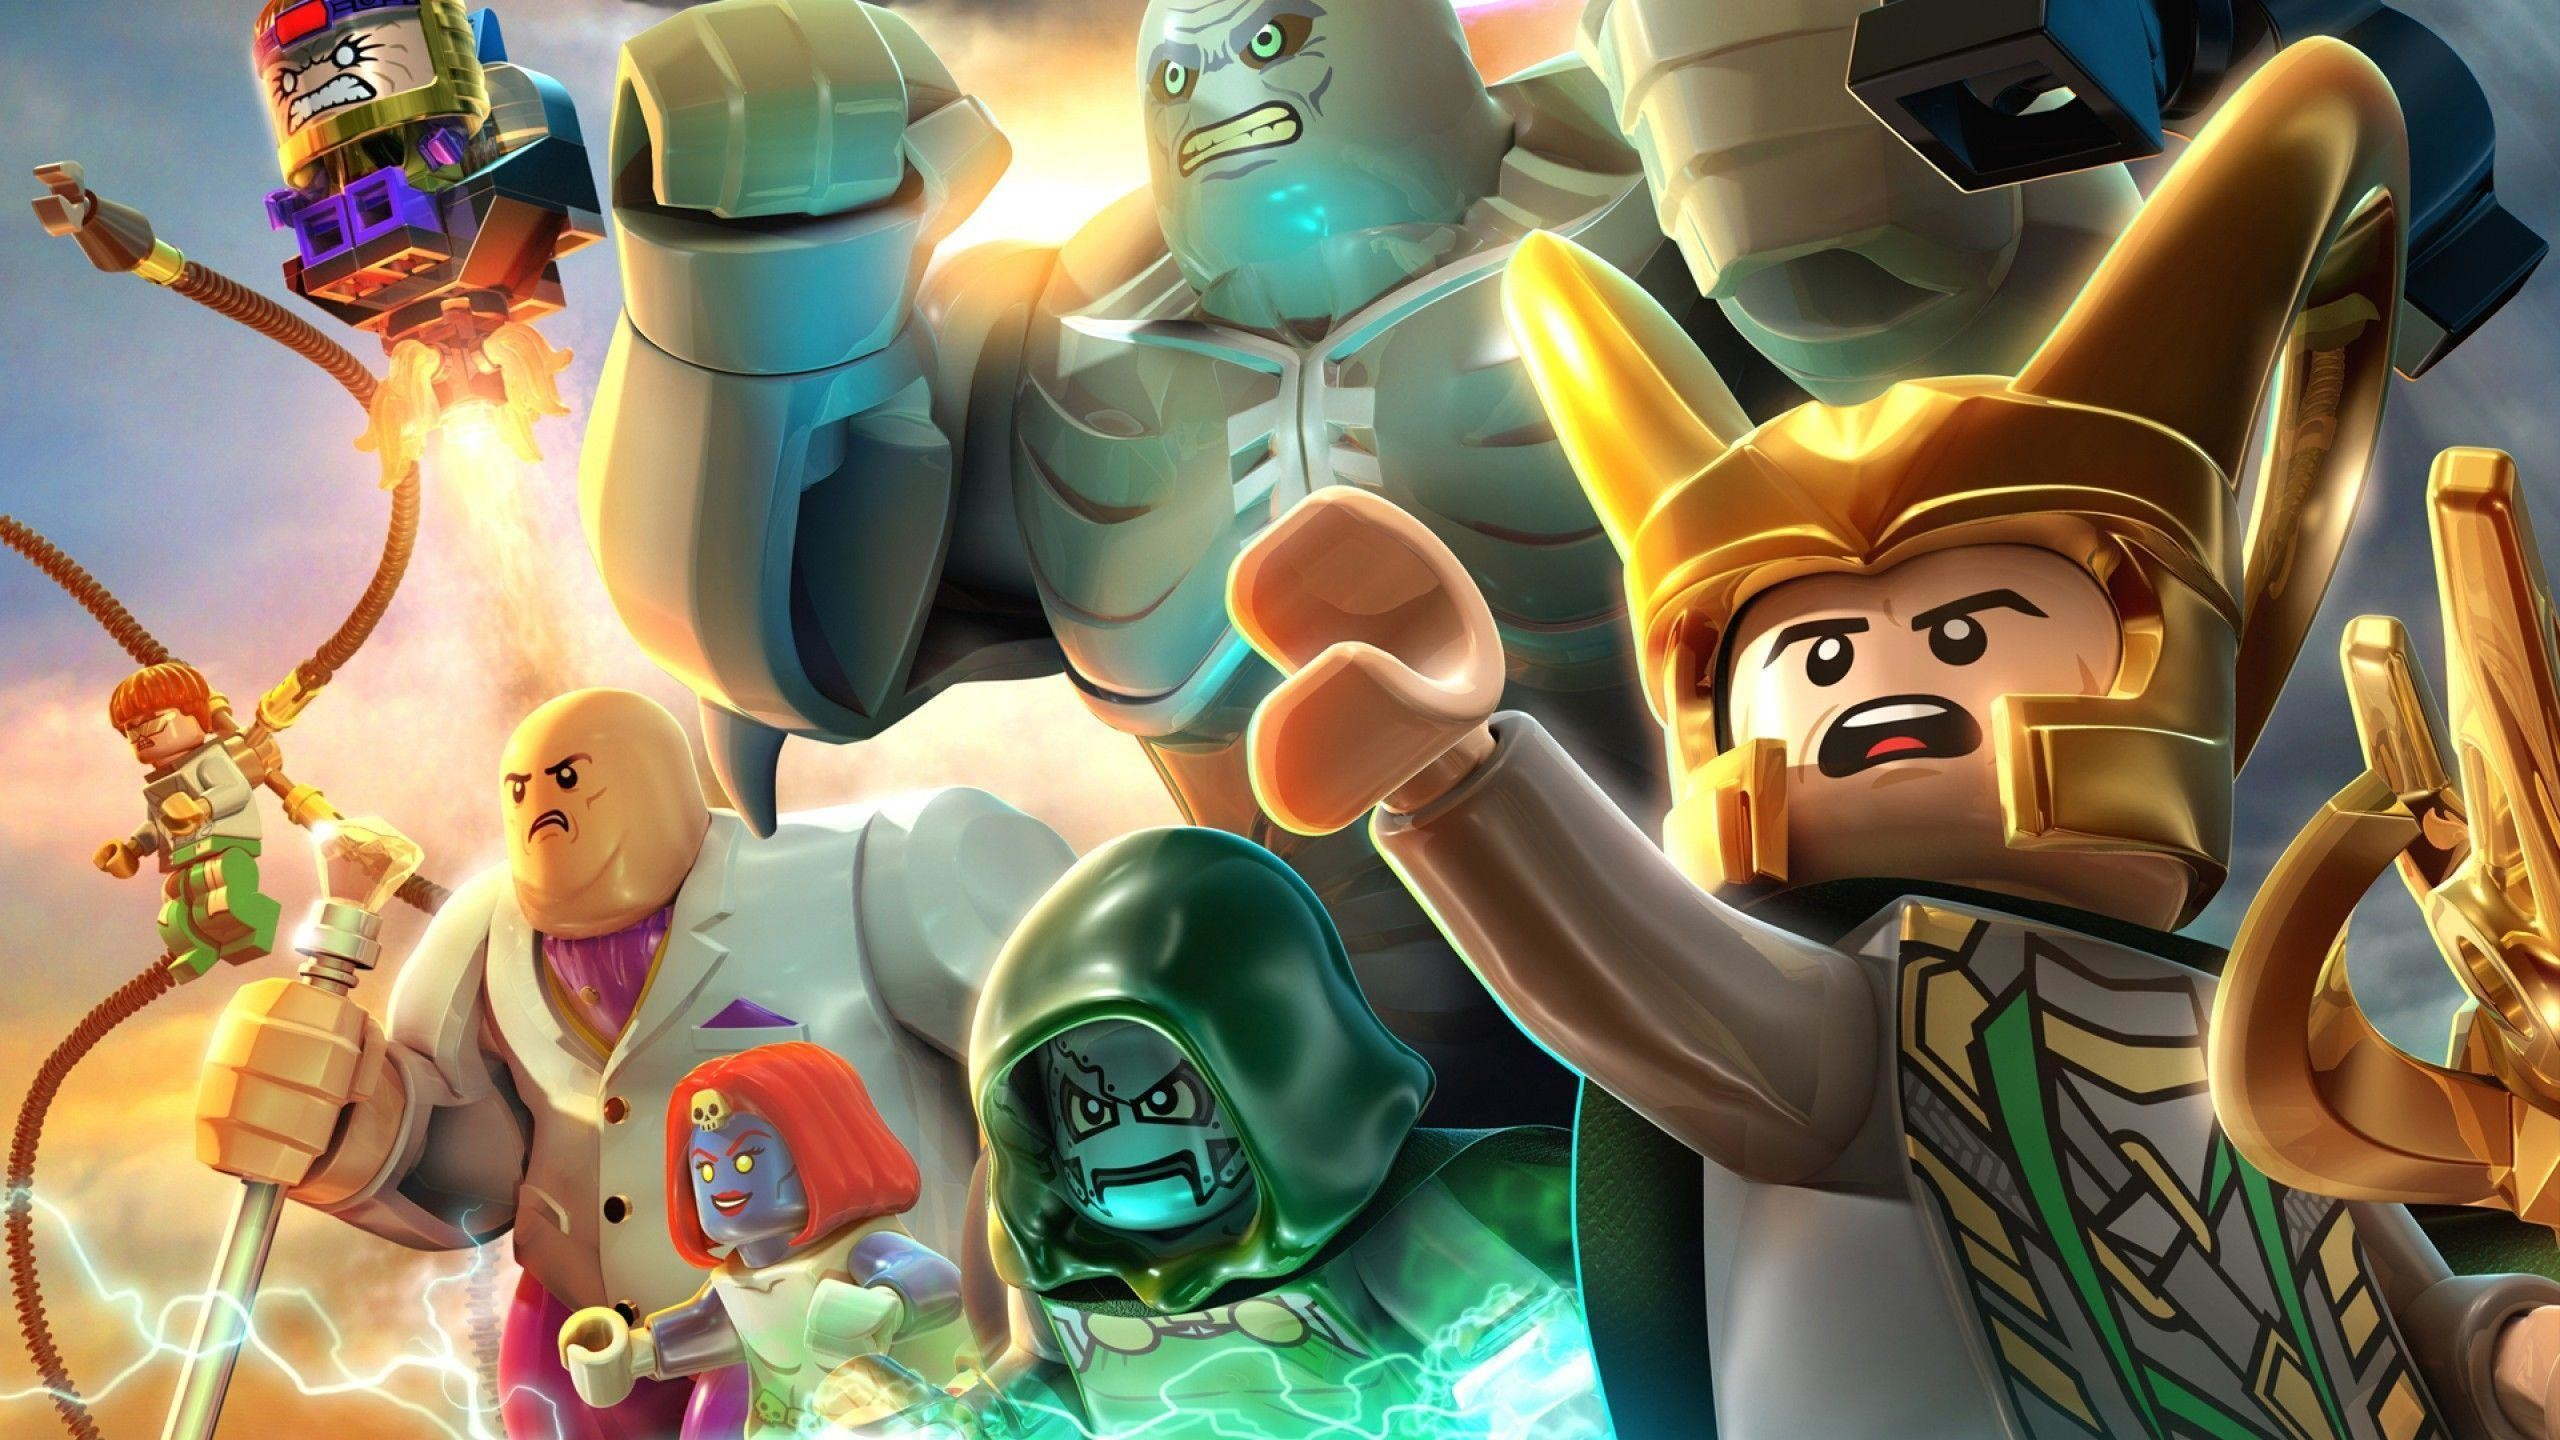 2560x1440, Lego Marvel Super Heroes Hd Wallpapers   - Lego Super Heroes 2 - HD Wallpaper